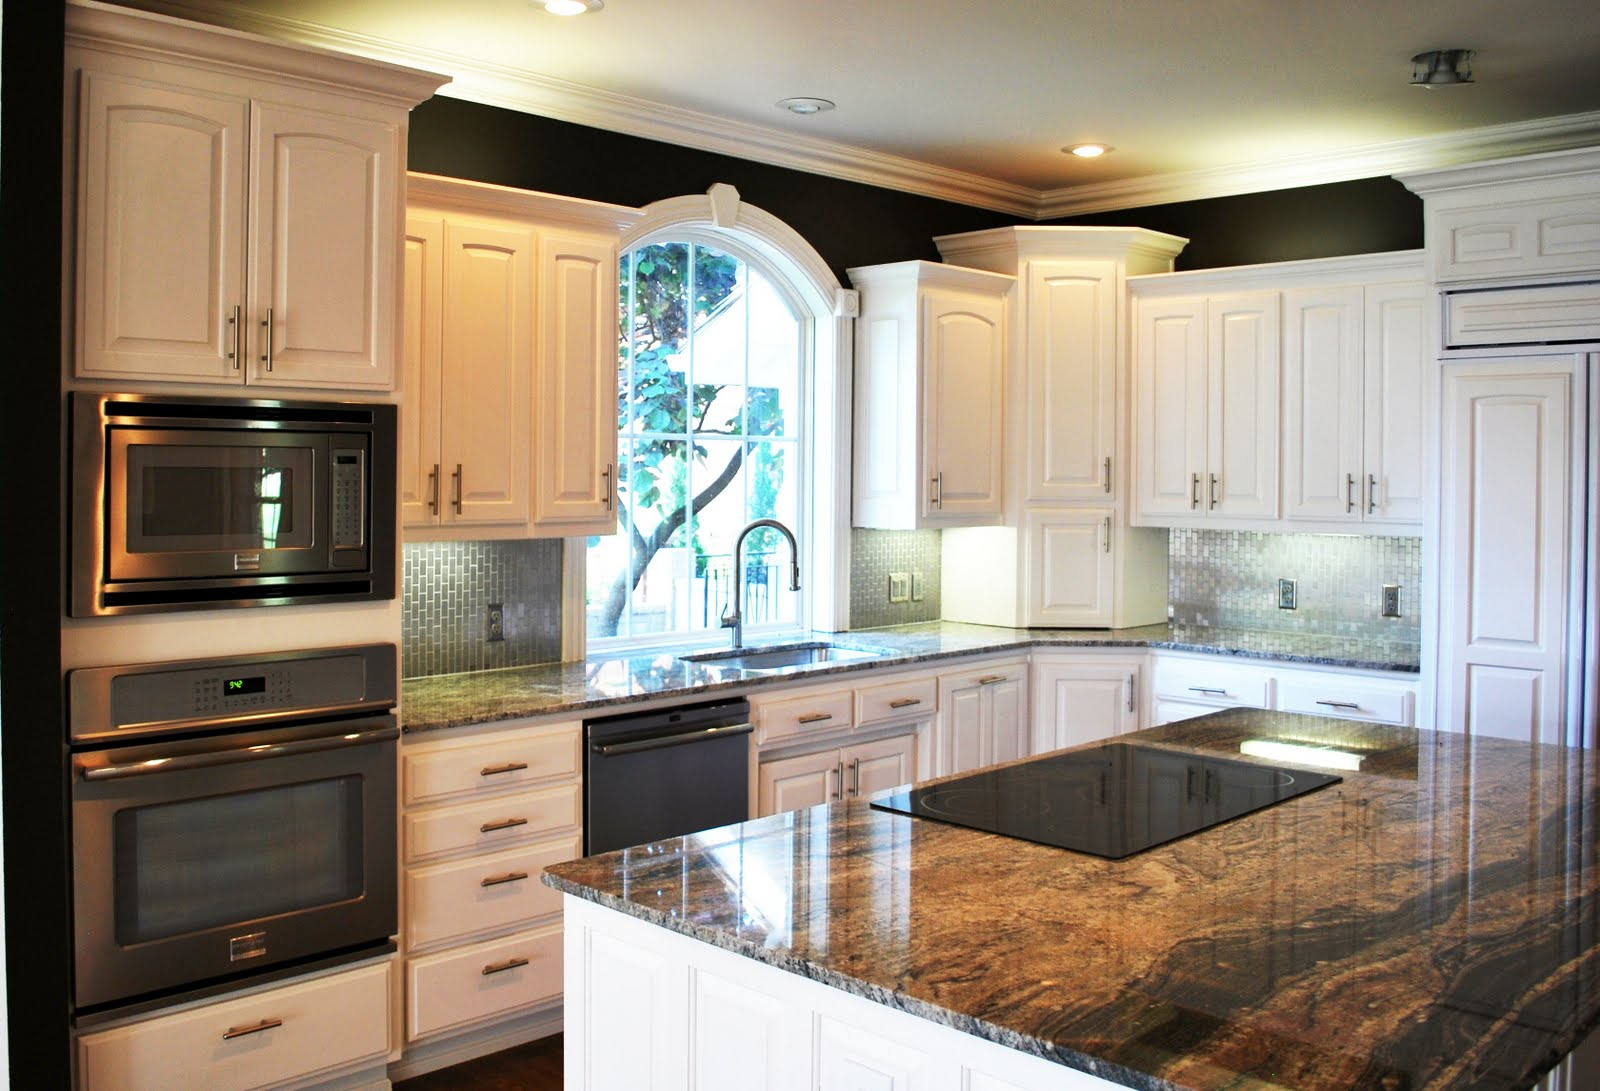 sherwin williams paint for kitchen cabinets stainless steel shelf black favorite colors blog